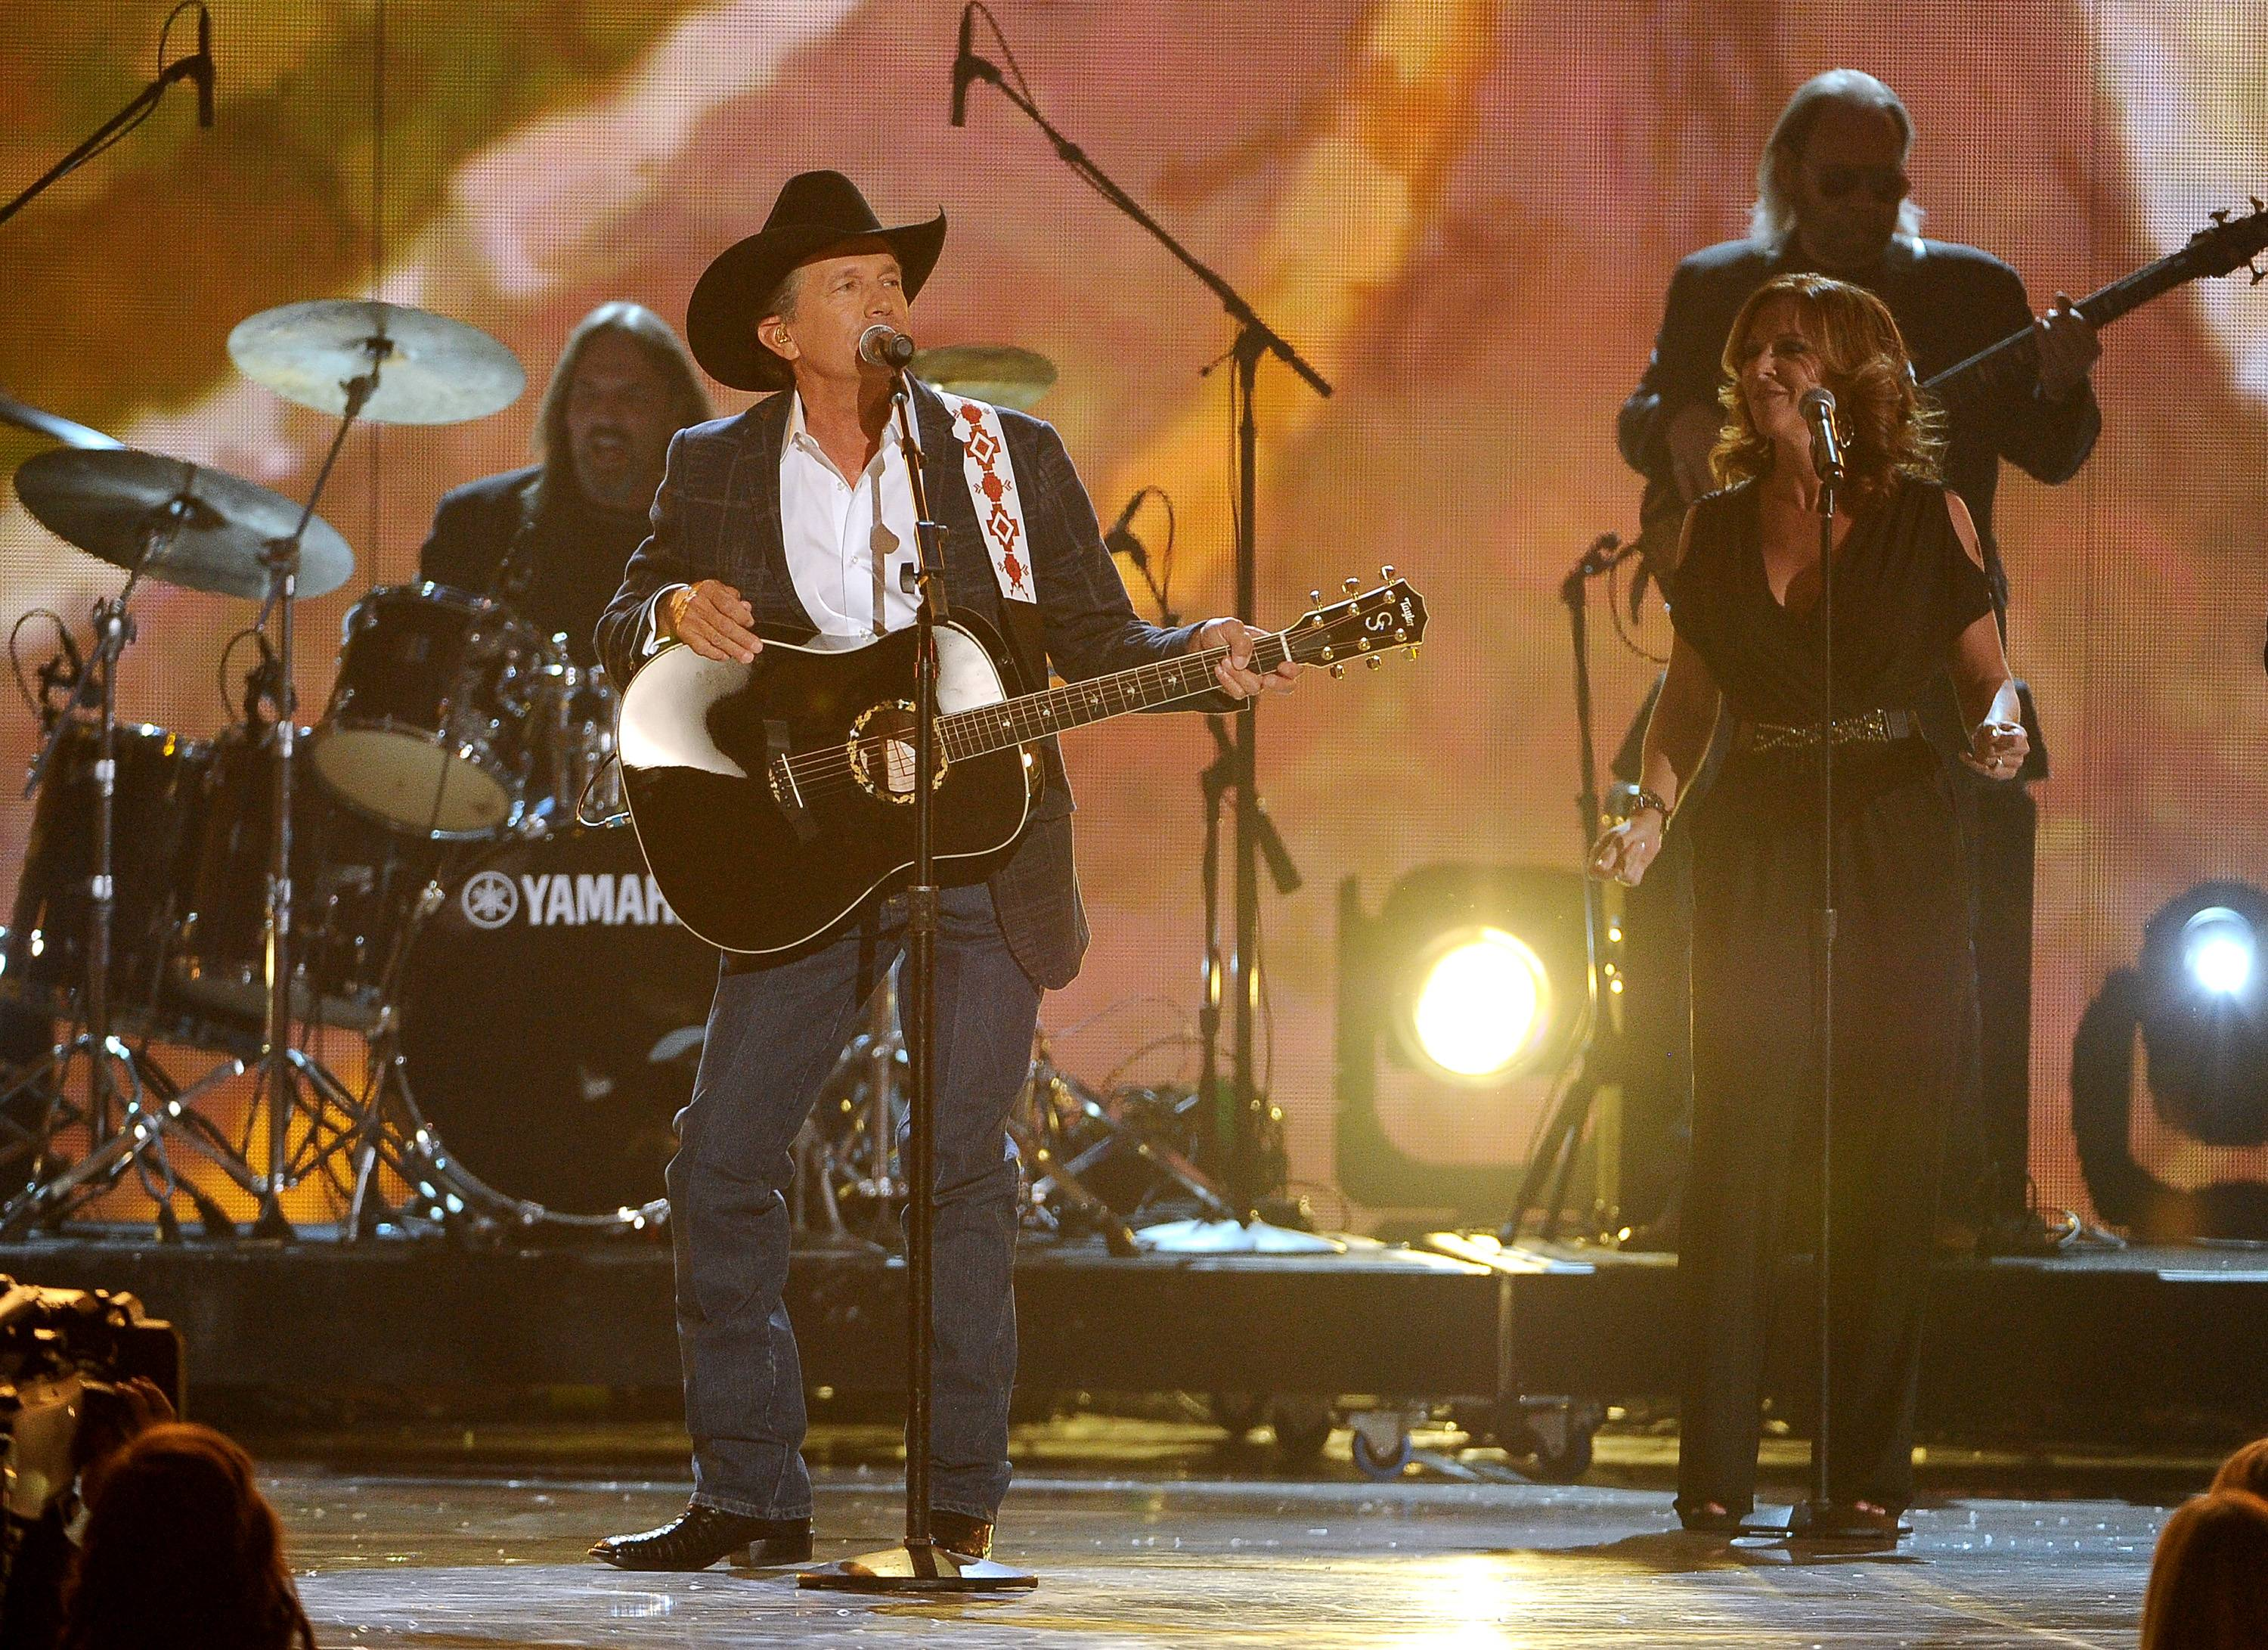 George Strait performs on stage at the 49th annual Academy of Country Music Awards at the MGM Grand Garden Arena on Sunday